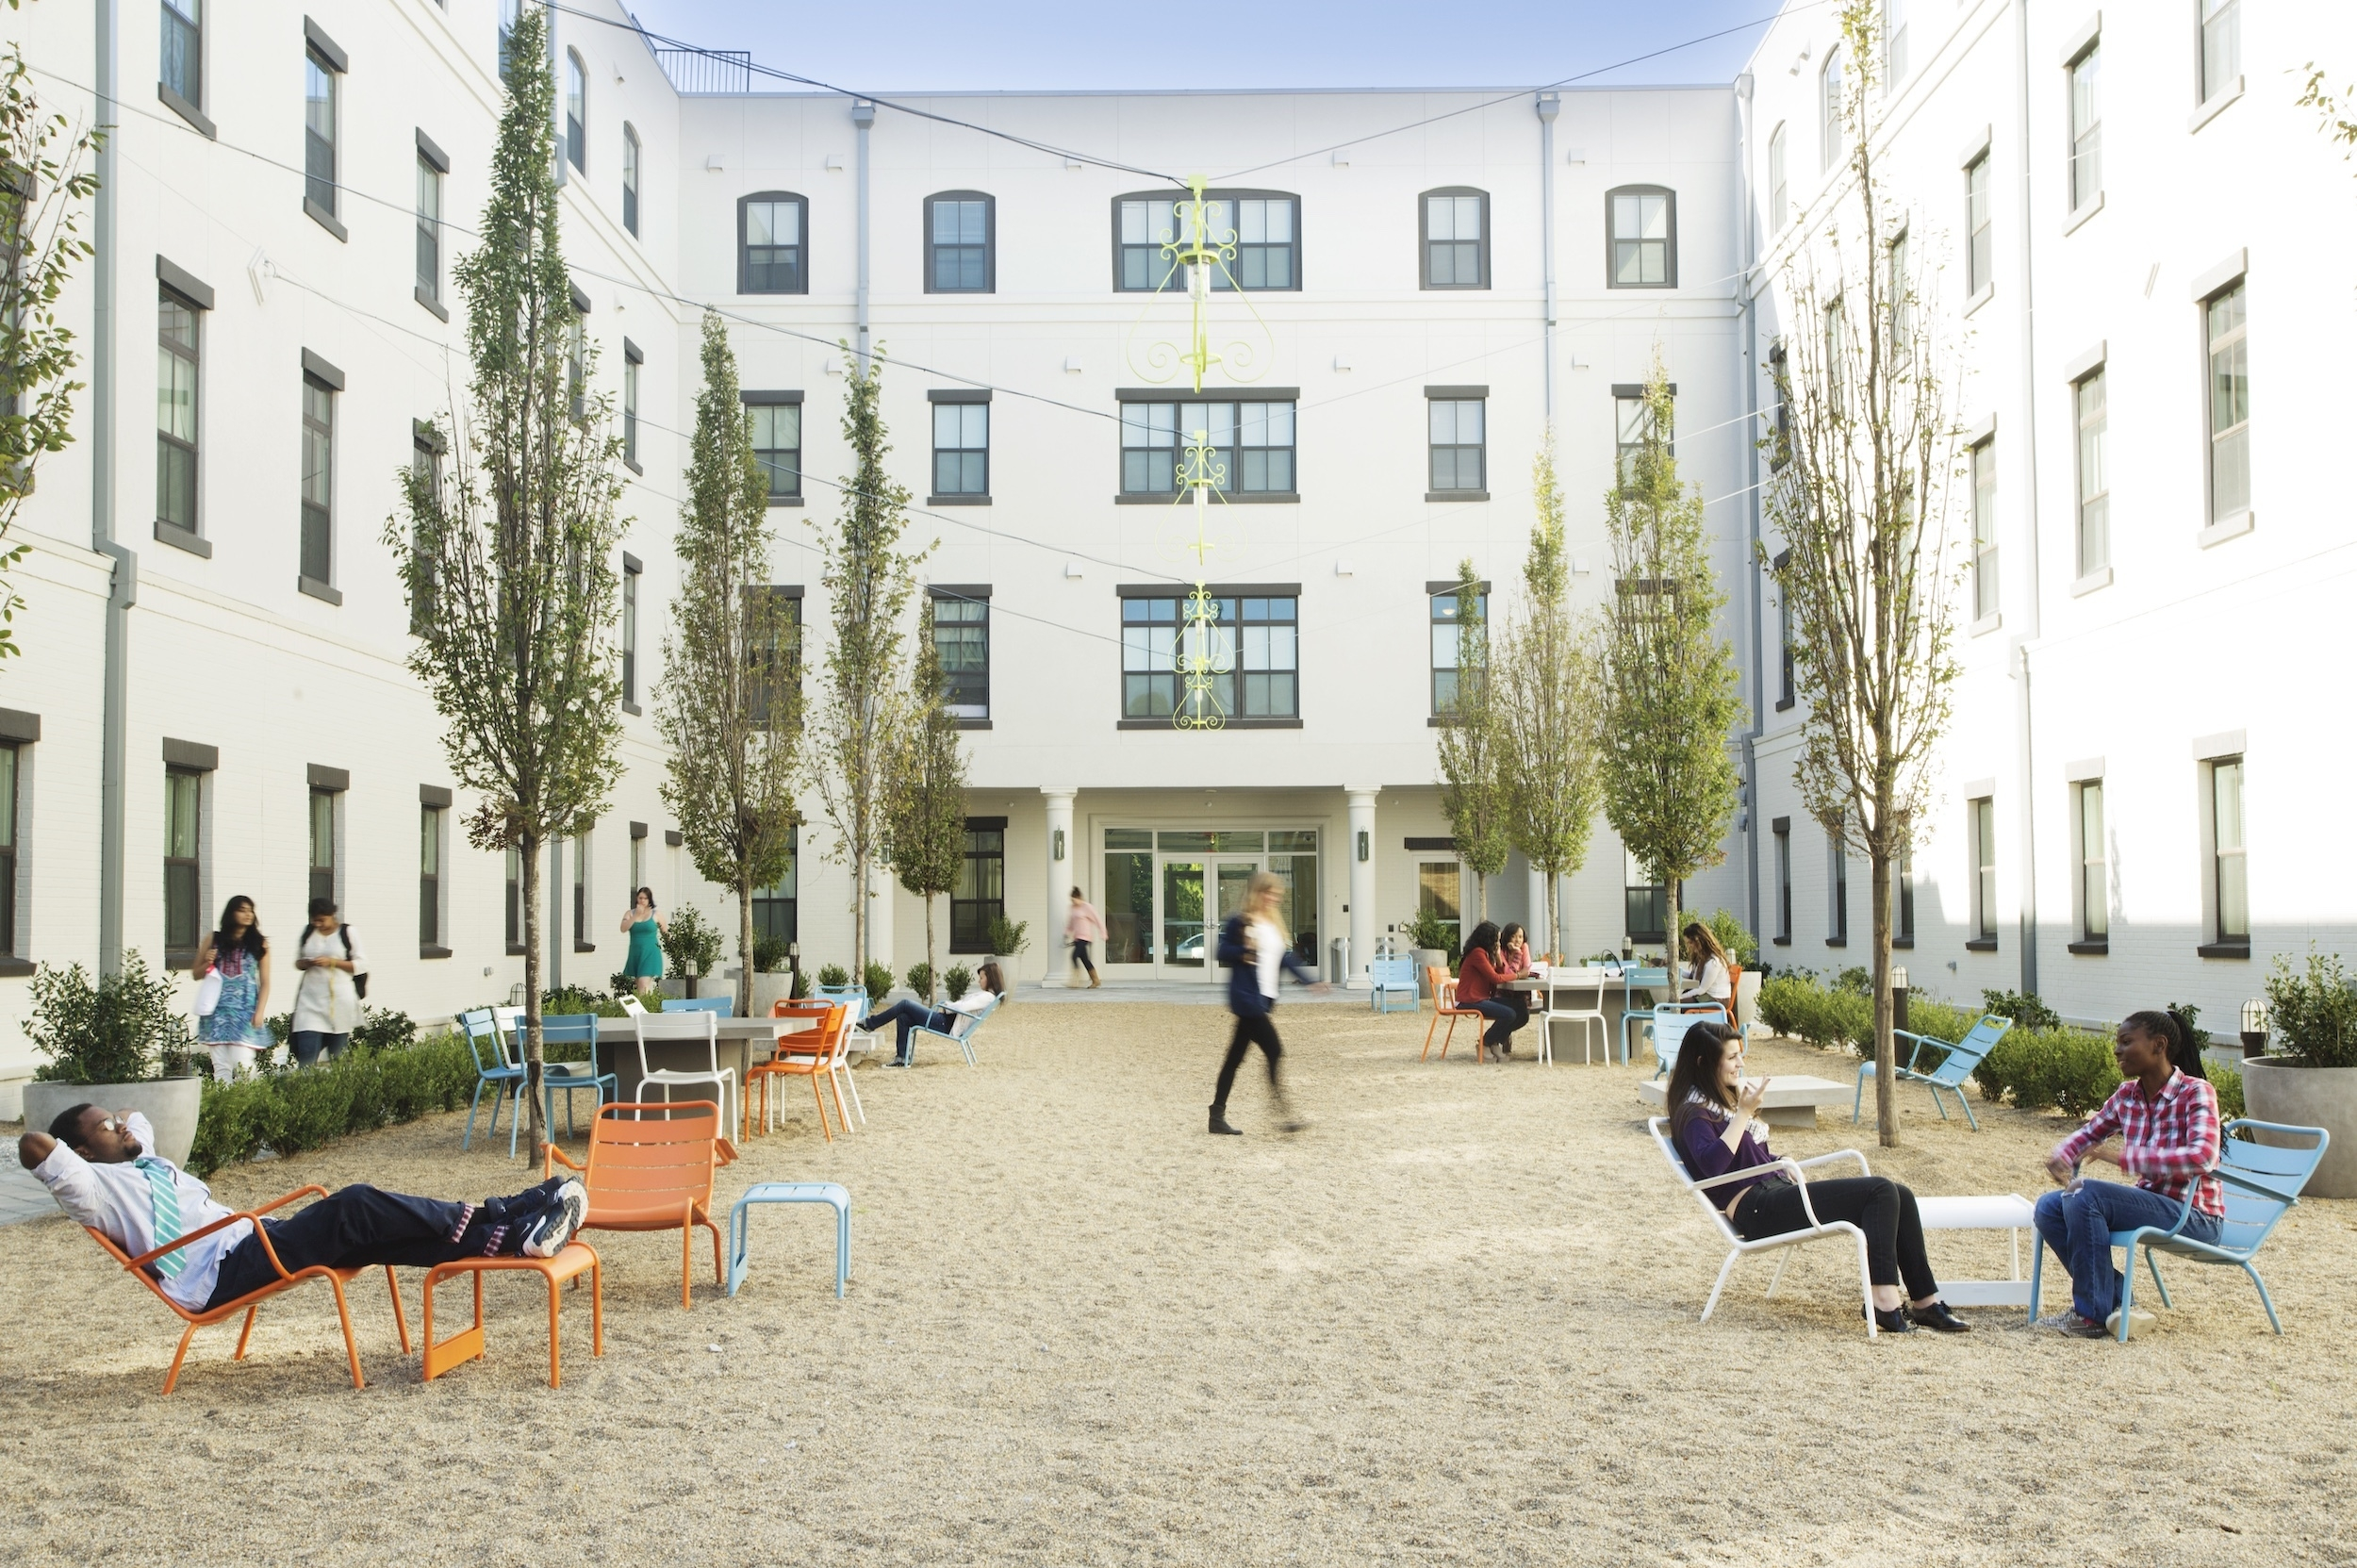 One West Victory courtyard with people seated in chairs in the sand